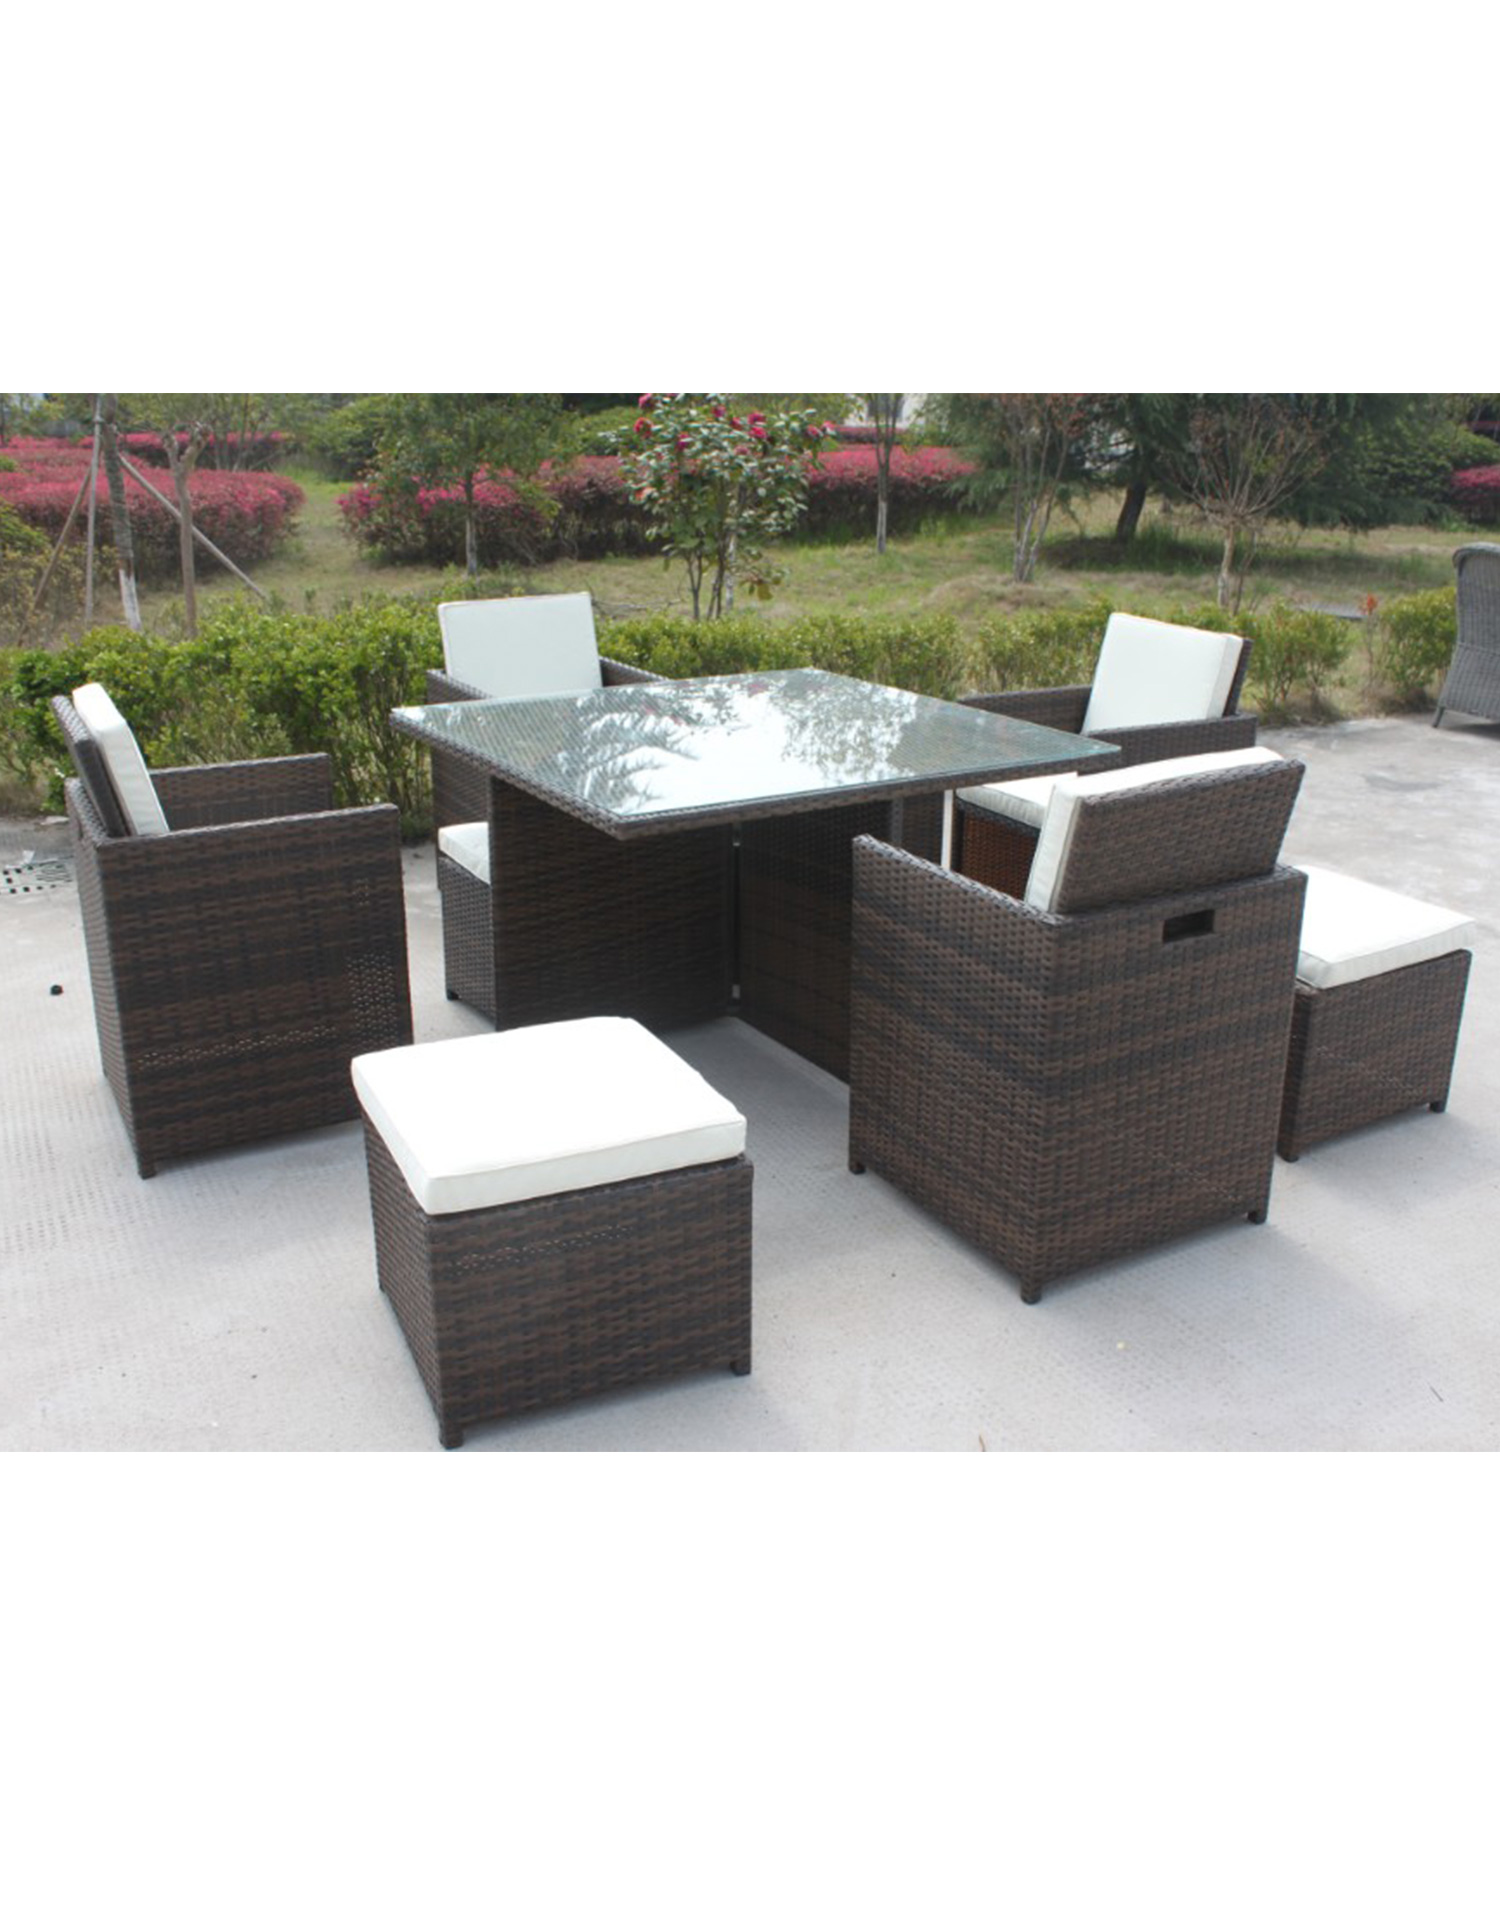 rattan gartenm bel rustikal 01 10 33. Black Bedroom Furniture Sets. Home Design Ideas